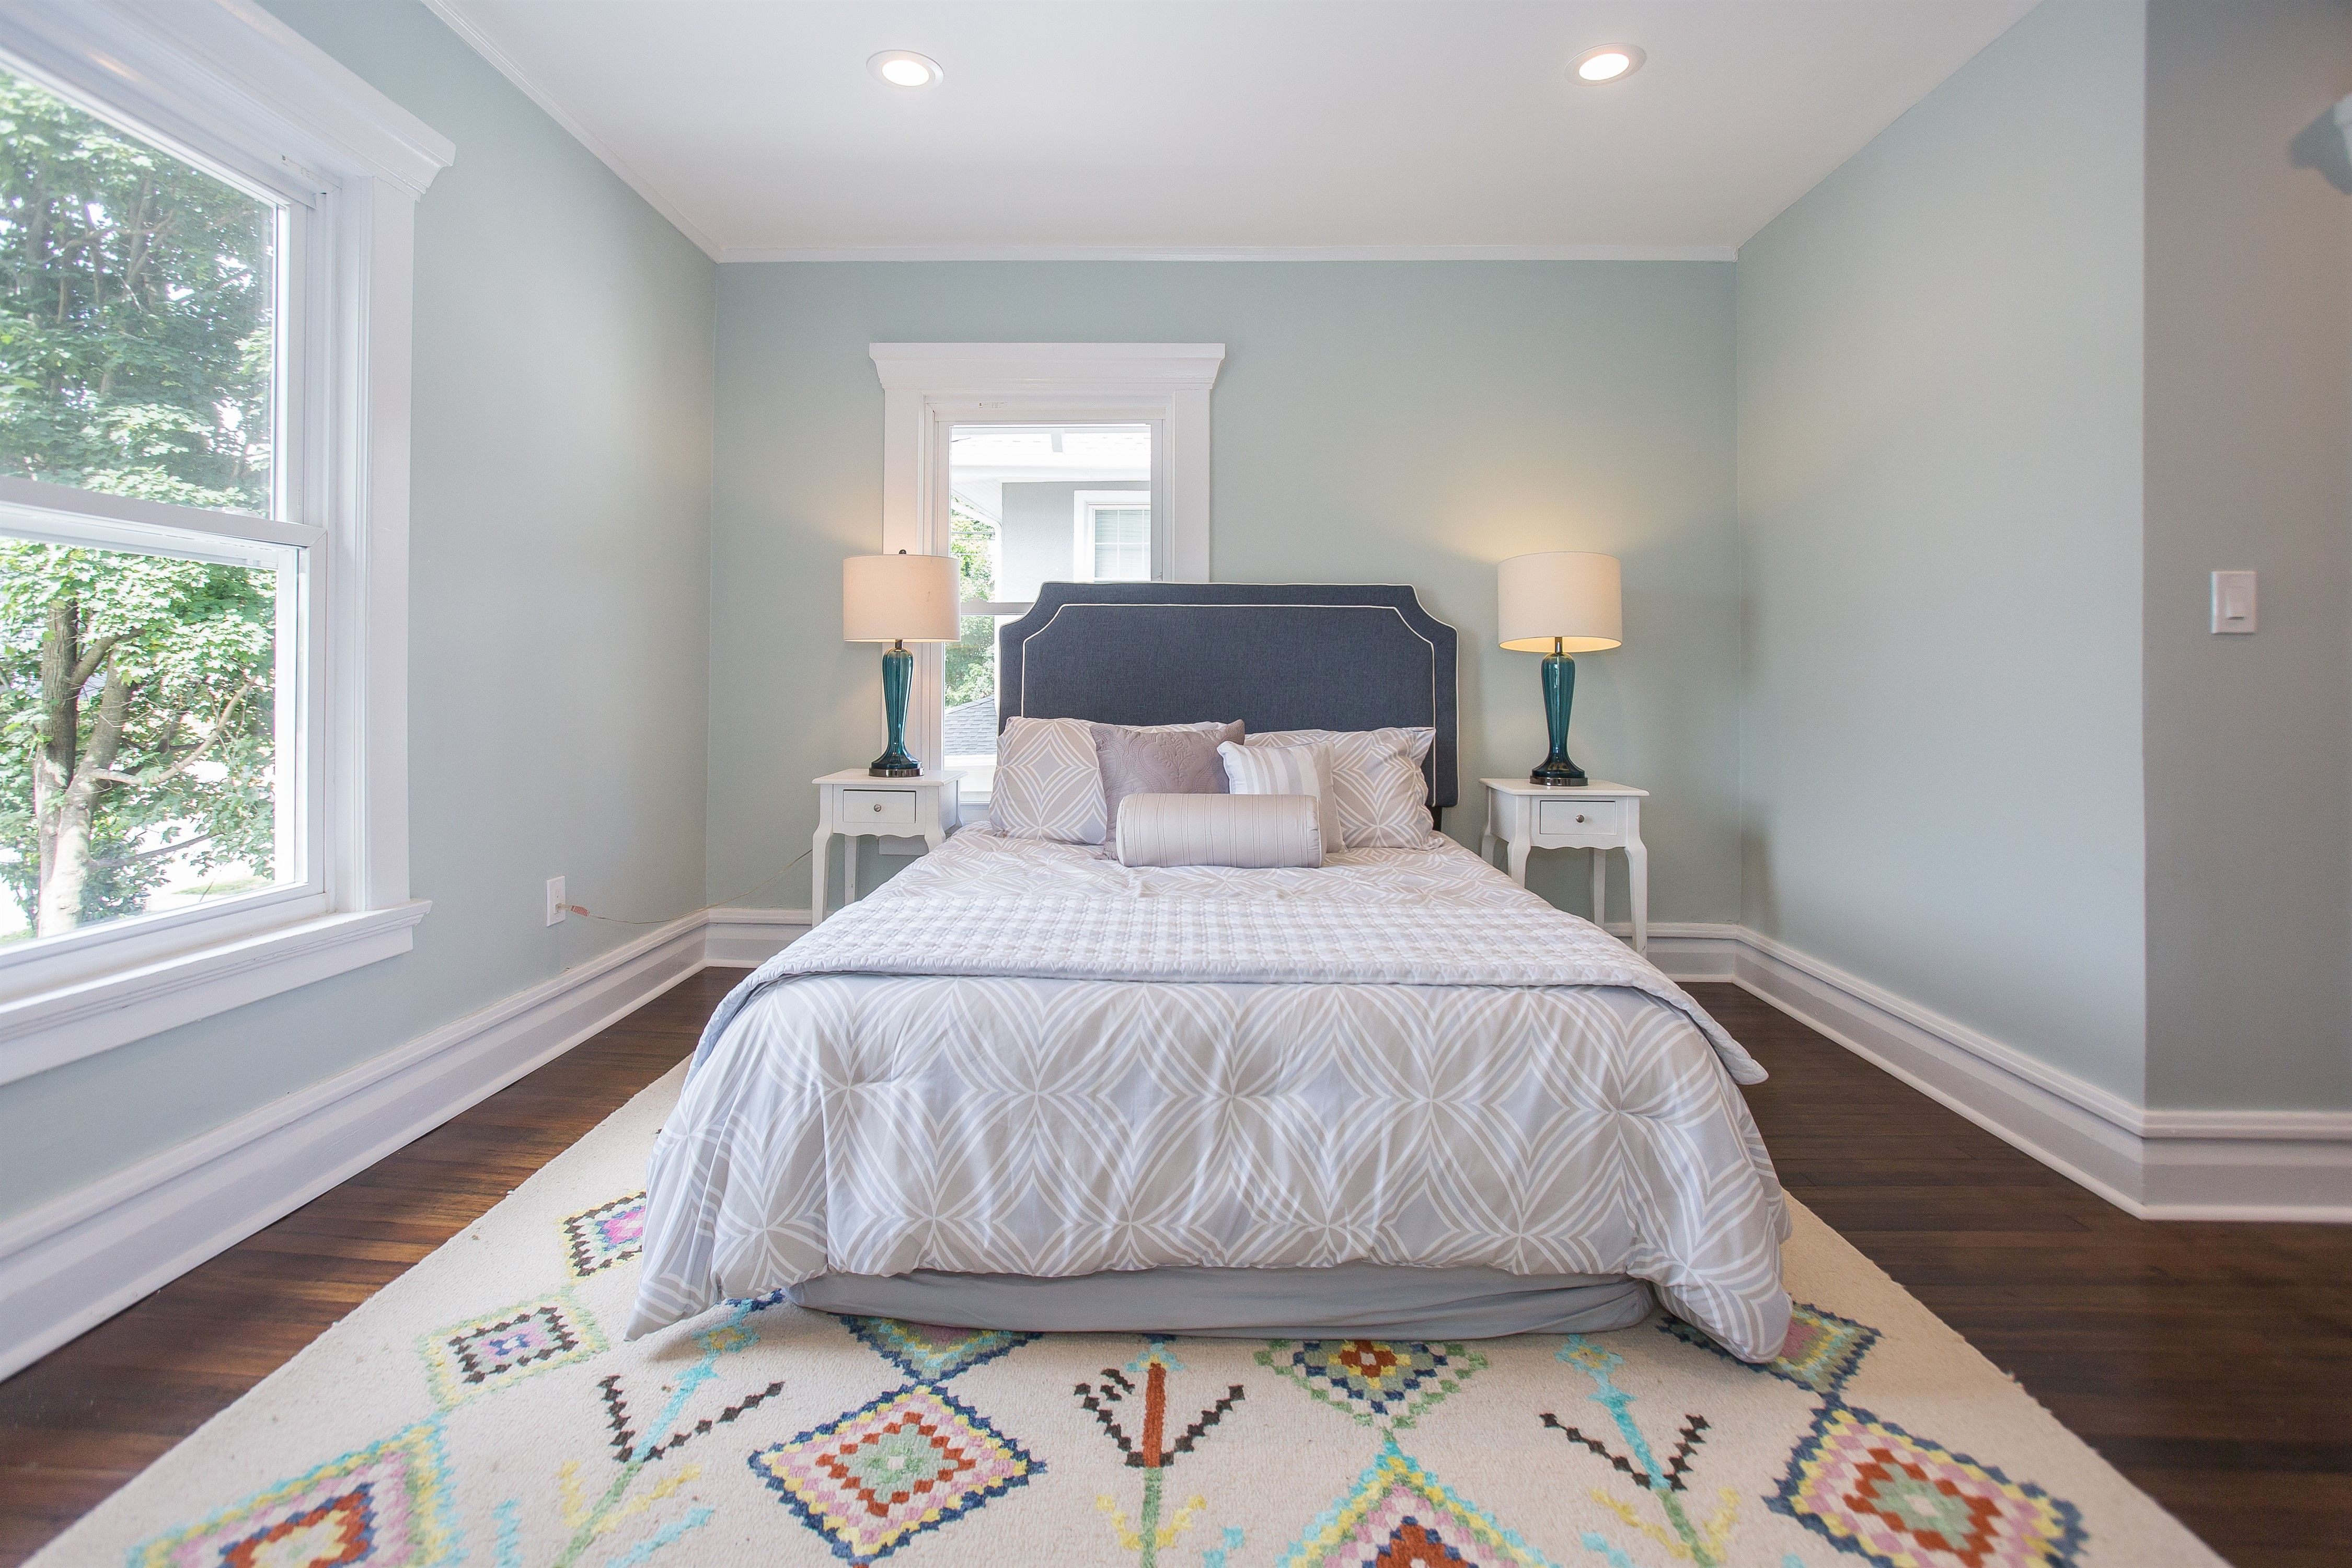 Spacious master bedroom with recessed lighting and natural